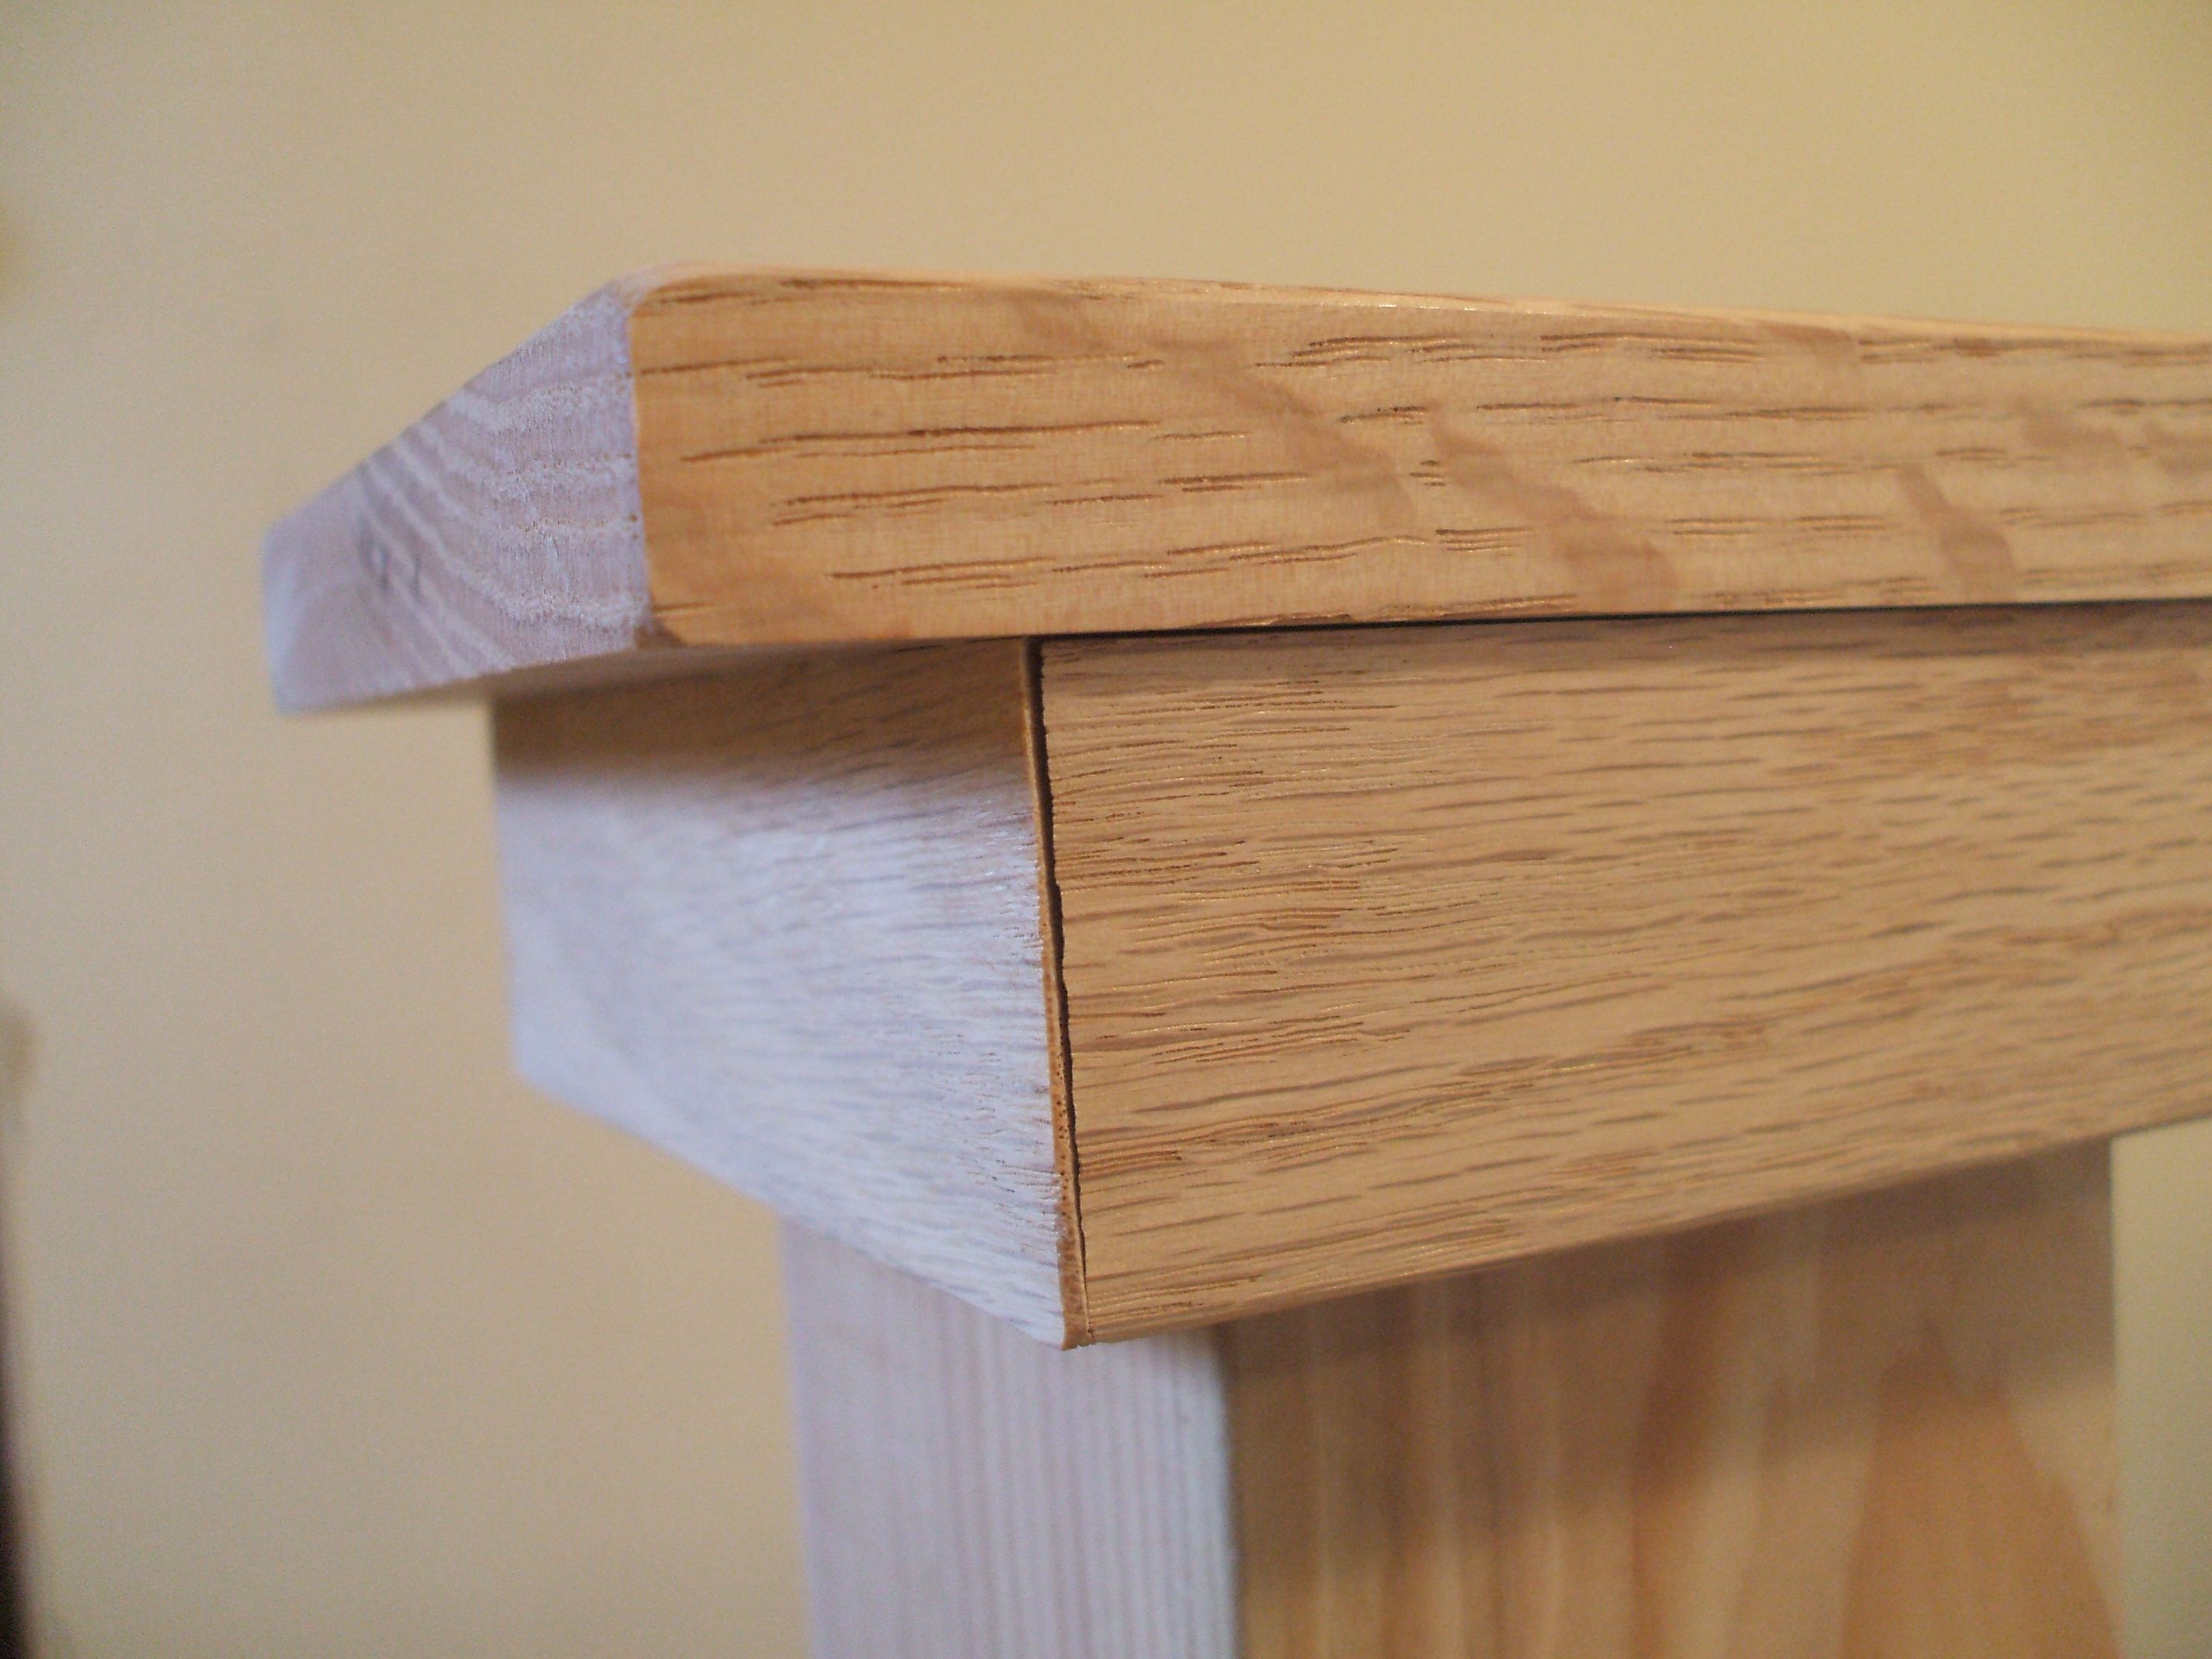 The Correct Use Of Wood Filler Wood Filler Wood Putty Wood